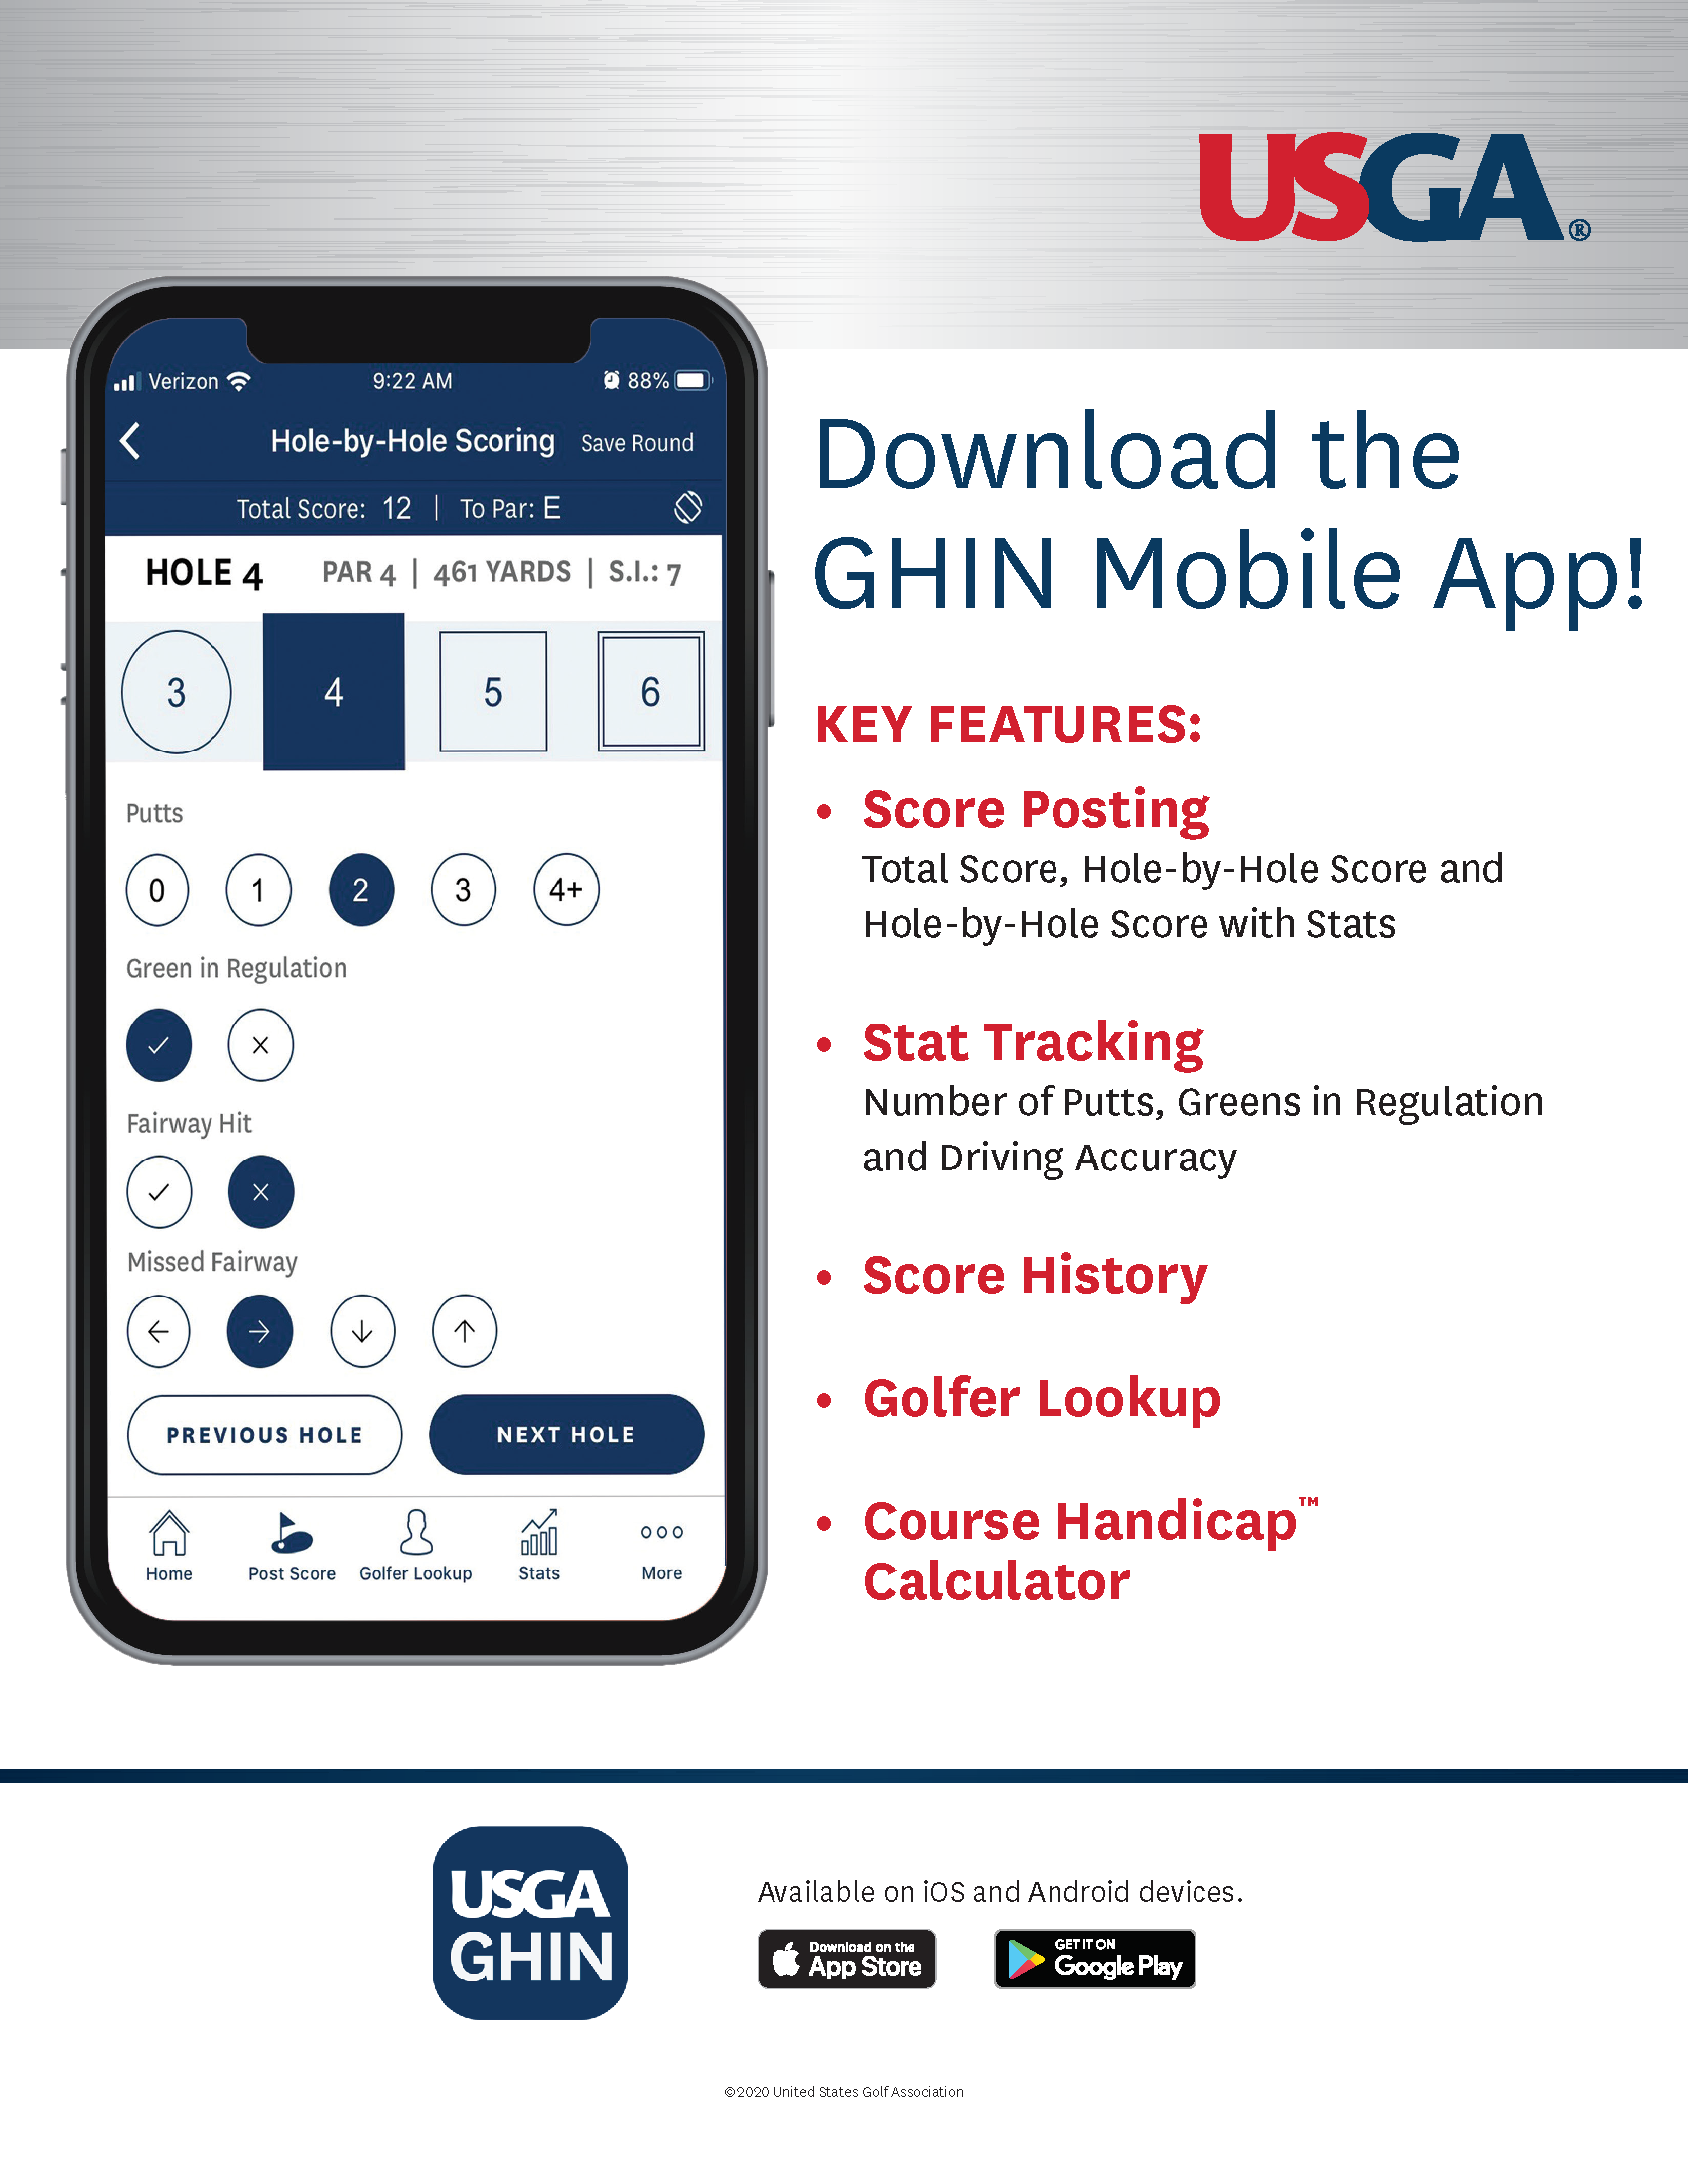 https://snga.org/wp-content/uploads/GHIN-Mobile-App-Flyer_2020-1.png